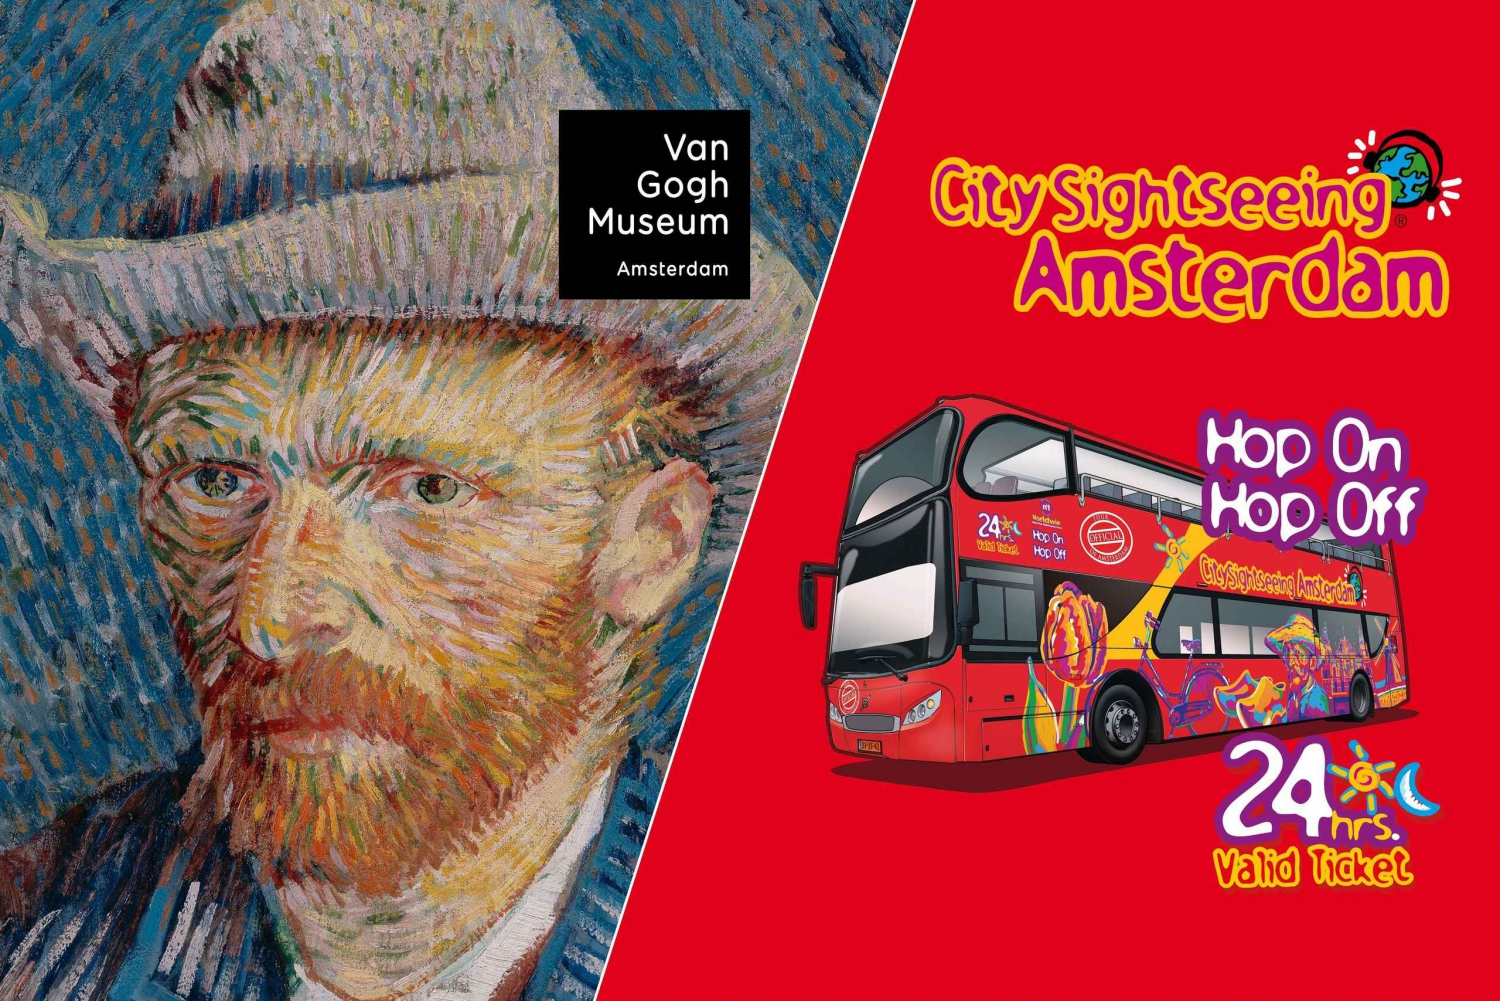 Hop-on Hop-off Bus Tour & Van Gogh Museum Timed Access